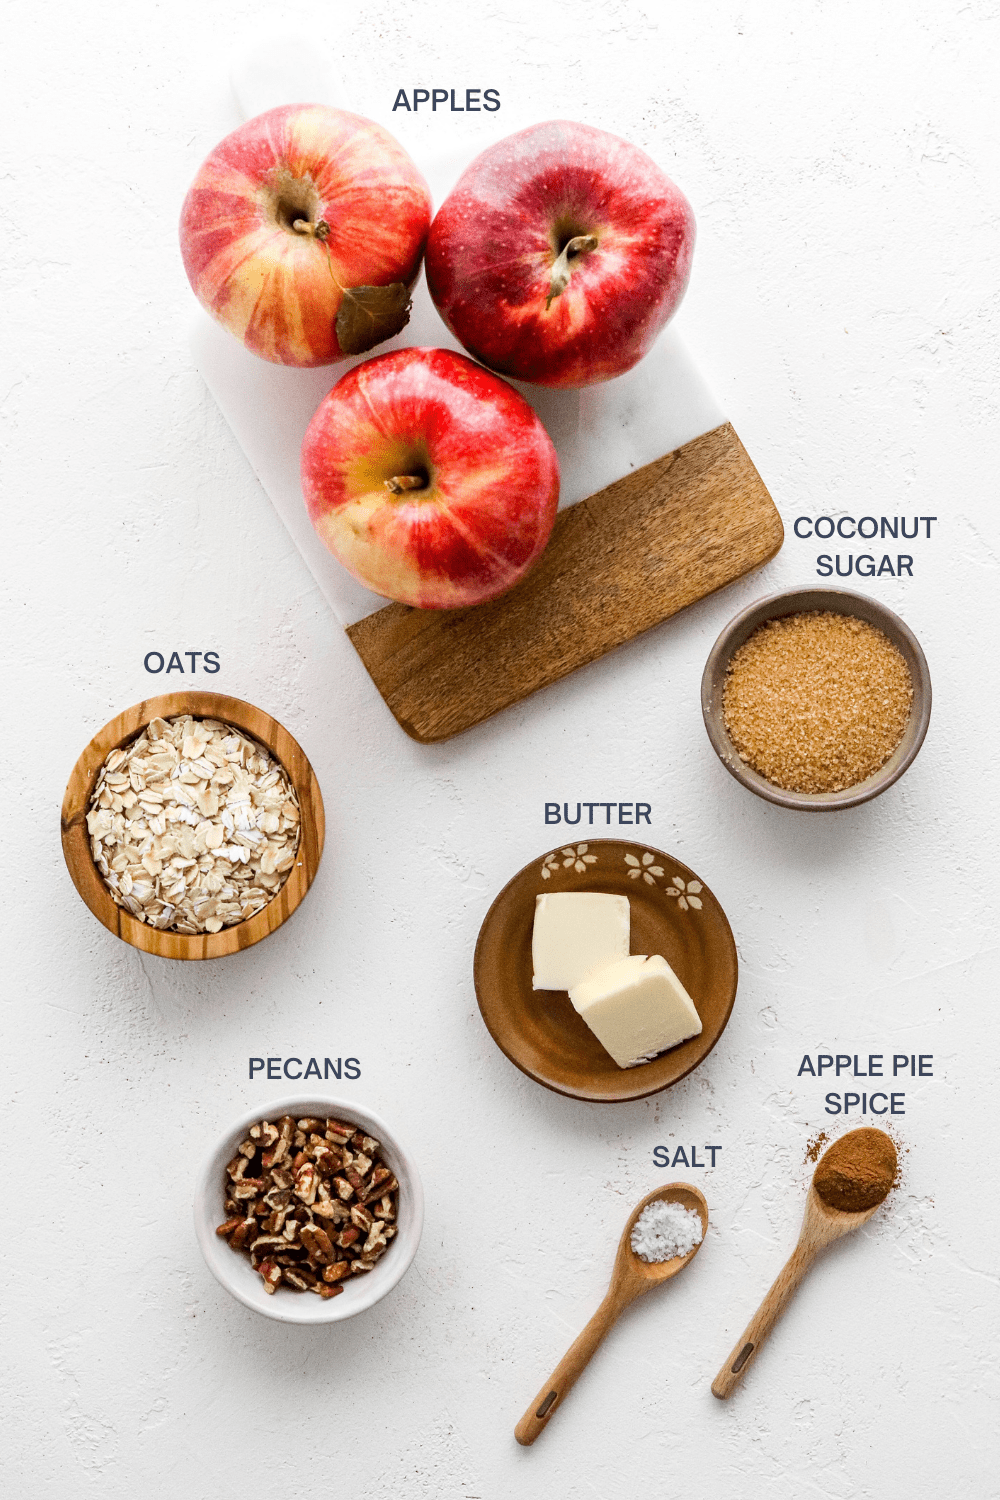 3 whole red apples on a cutting boar with a bowl of sugar, bowl of oats, brown small plate with a couple cubes of butter, bowl of pecans, wooden spoon with salt and another wooden spoon with apple pie spice in front of it.